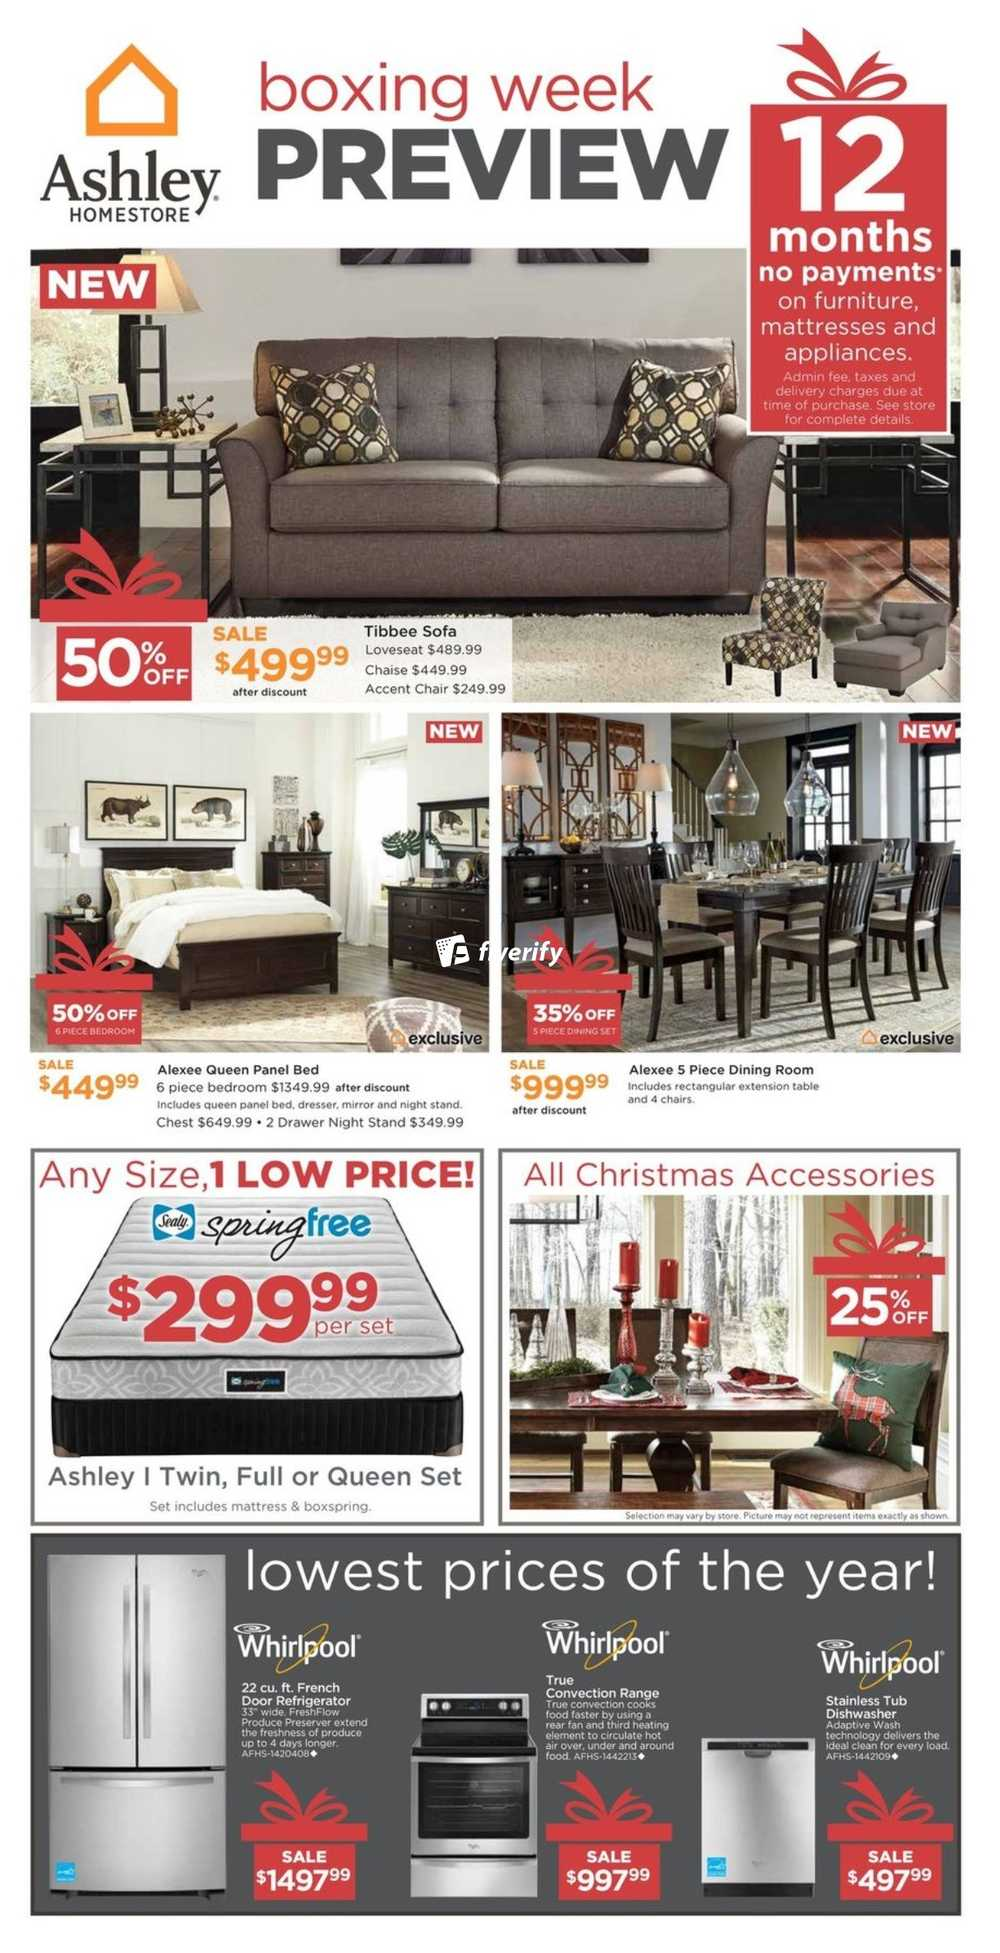 Ashley Homestore (West) Flyer December 15 To 23